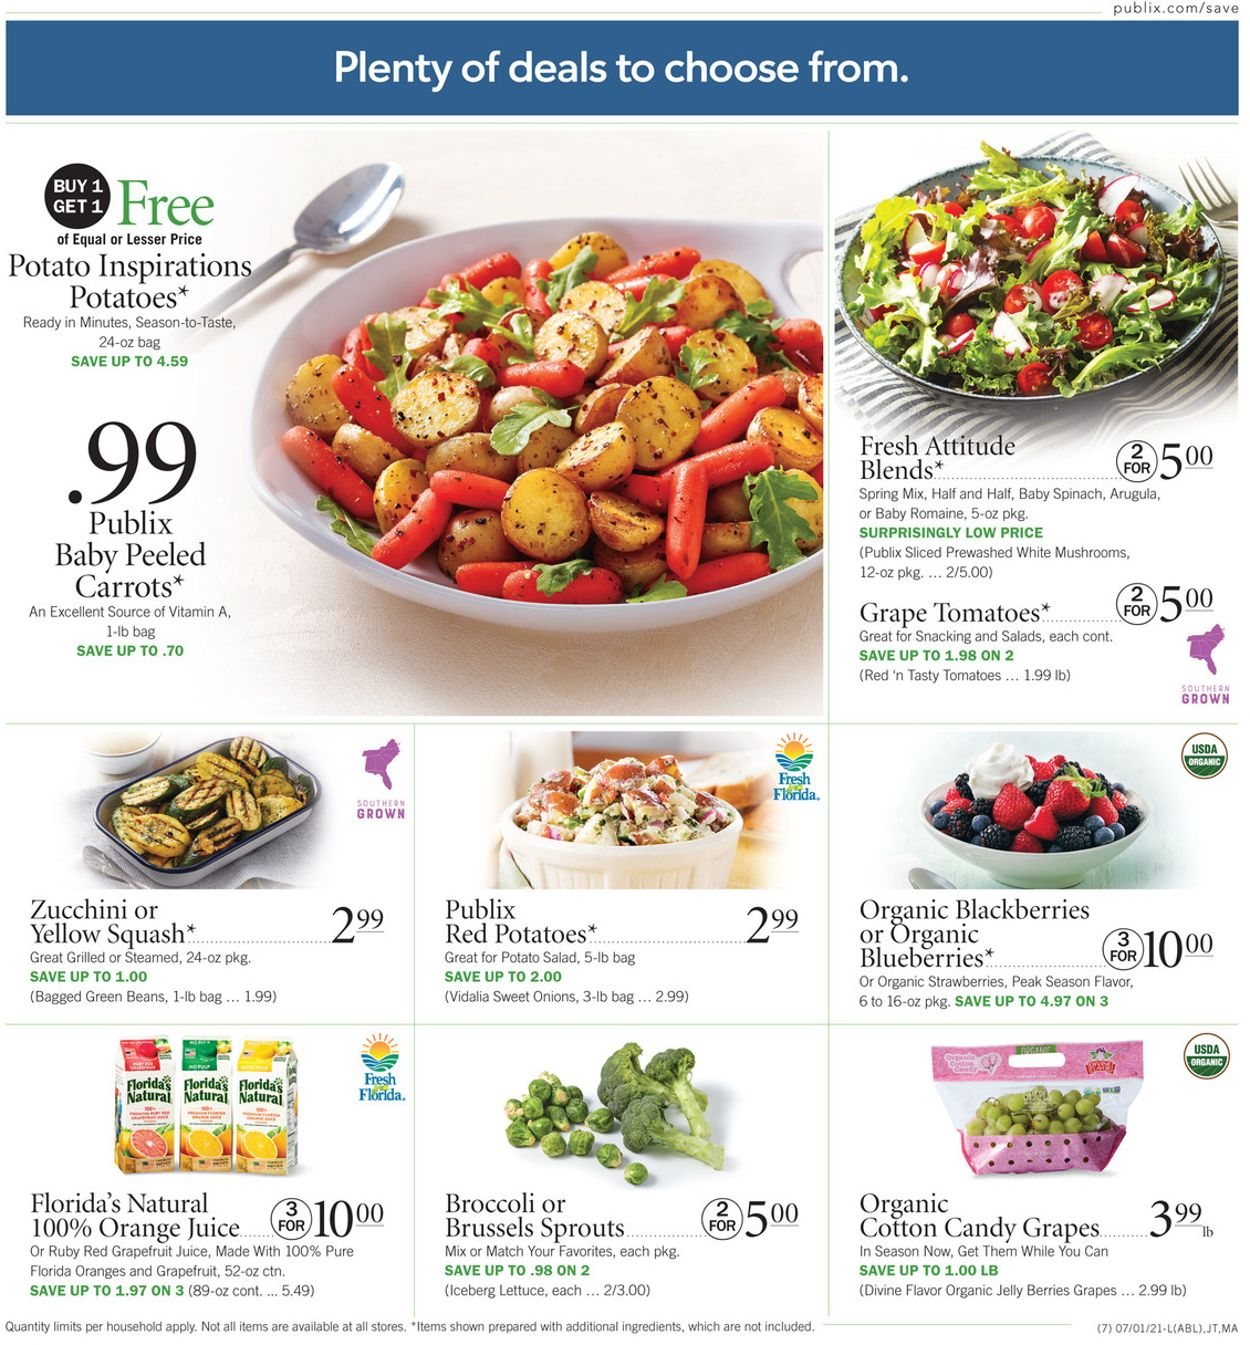 Publix Current weekly ad 06/17 - 06/23/2021 [6] - frequent